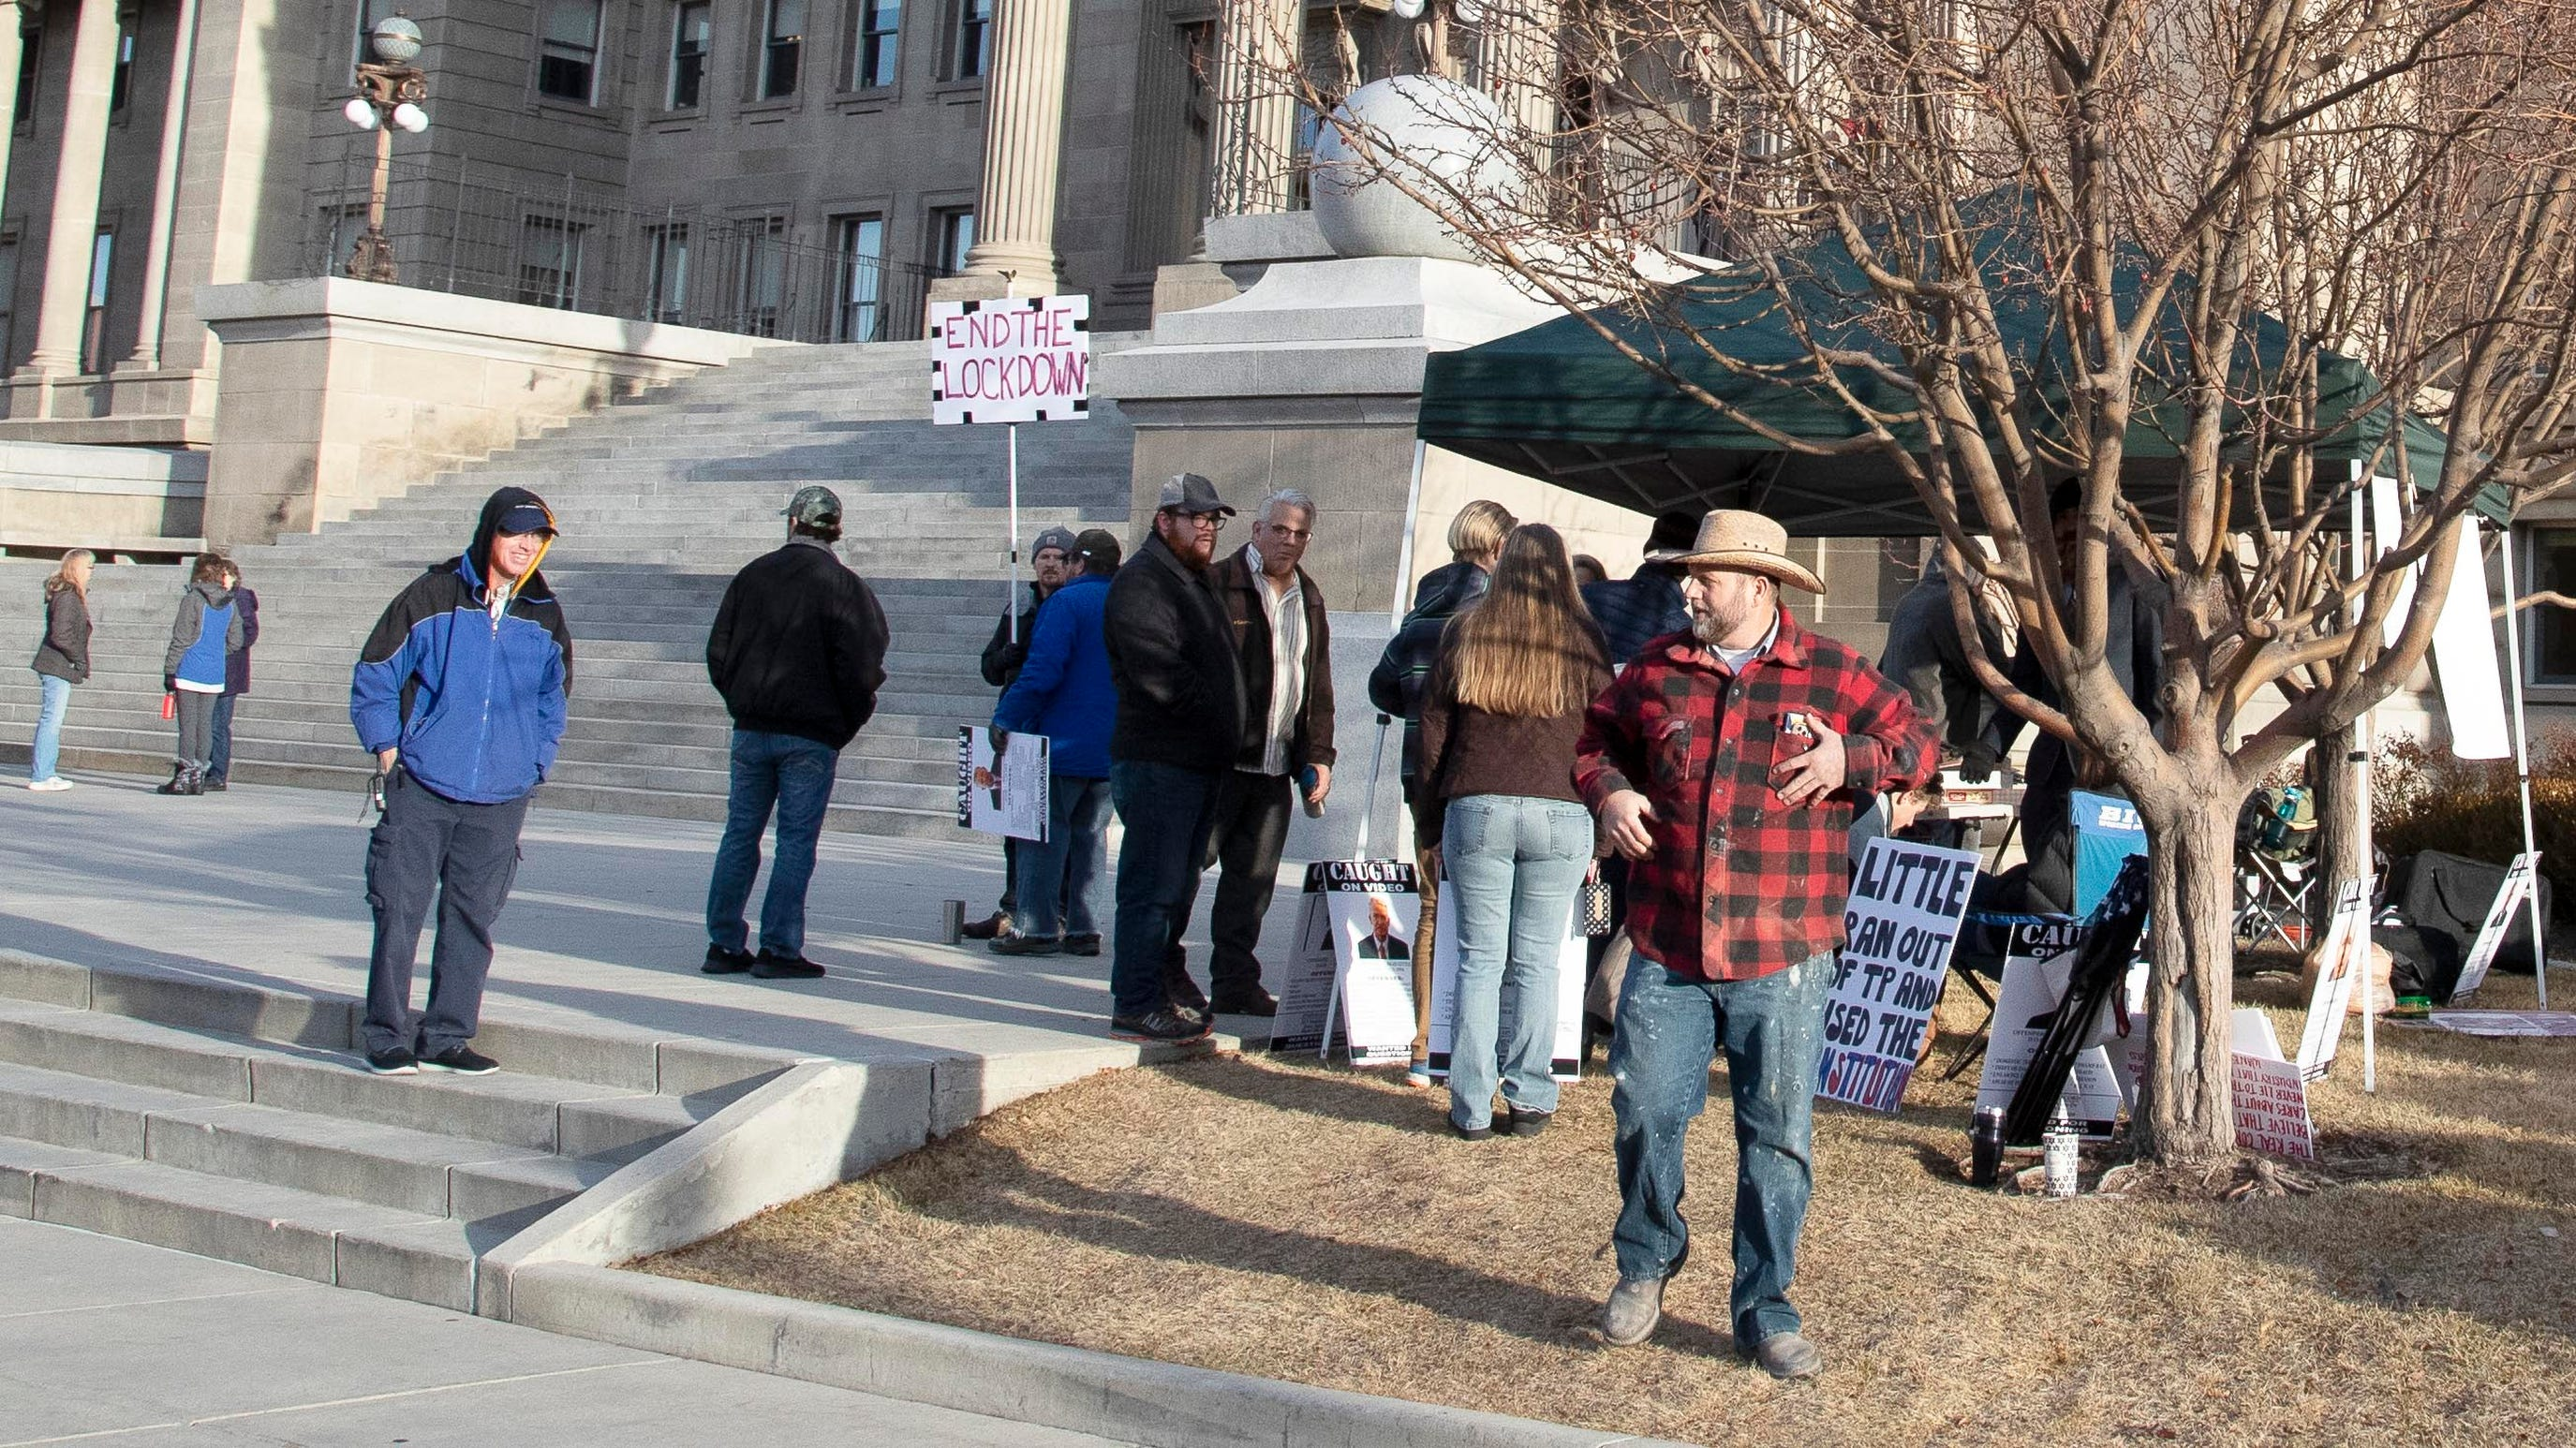 Ammon Bundy, right, arrested twice last summer at the Idaho Capitol, returns Monday, Jan. 11, 2021, to deliver protest signs to demonstrators on the first day of the Idaho Legislature in Boise.